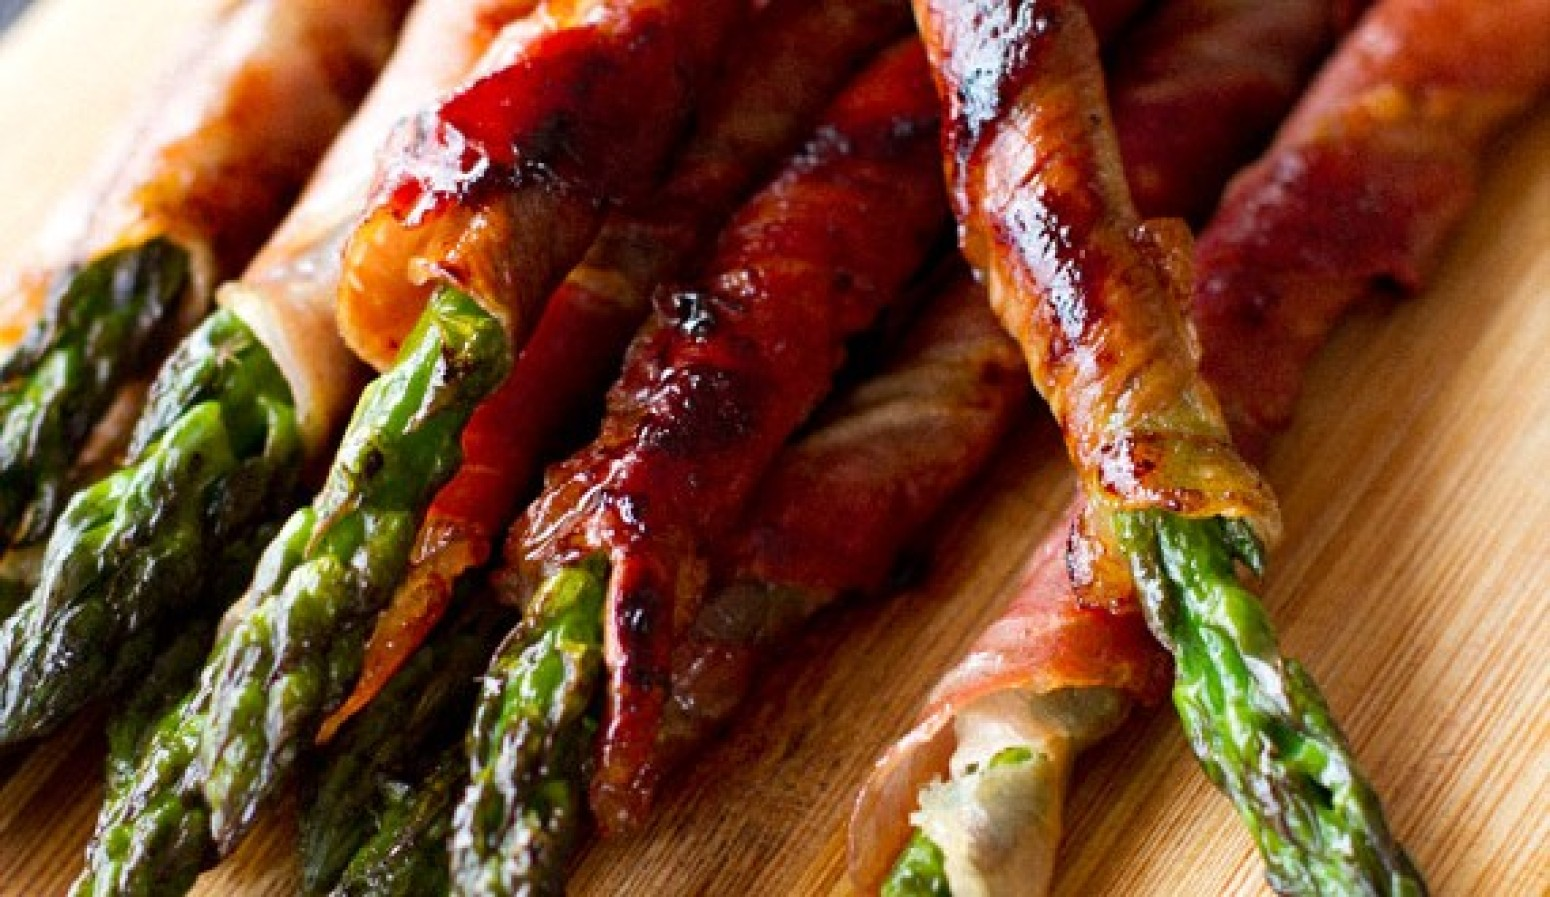 Prosciutto Wrapped Asparagus Recipe 6 | Just A Pinch Recipes